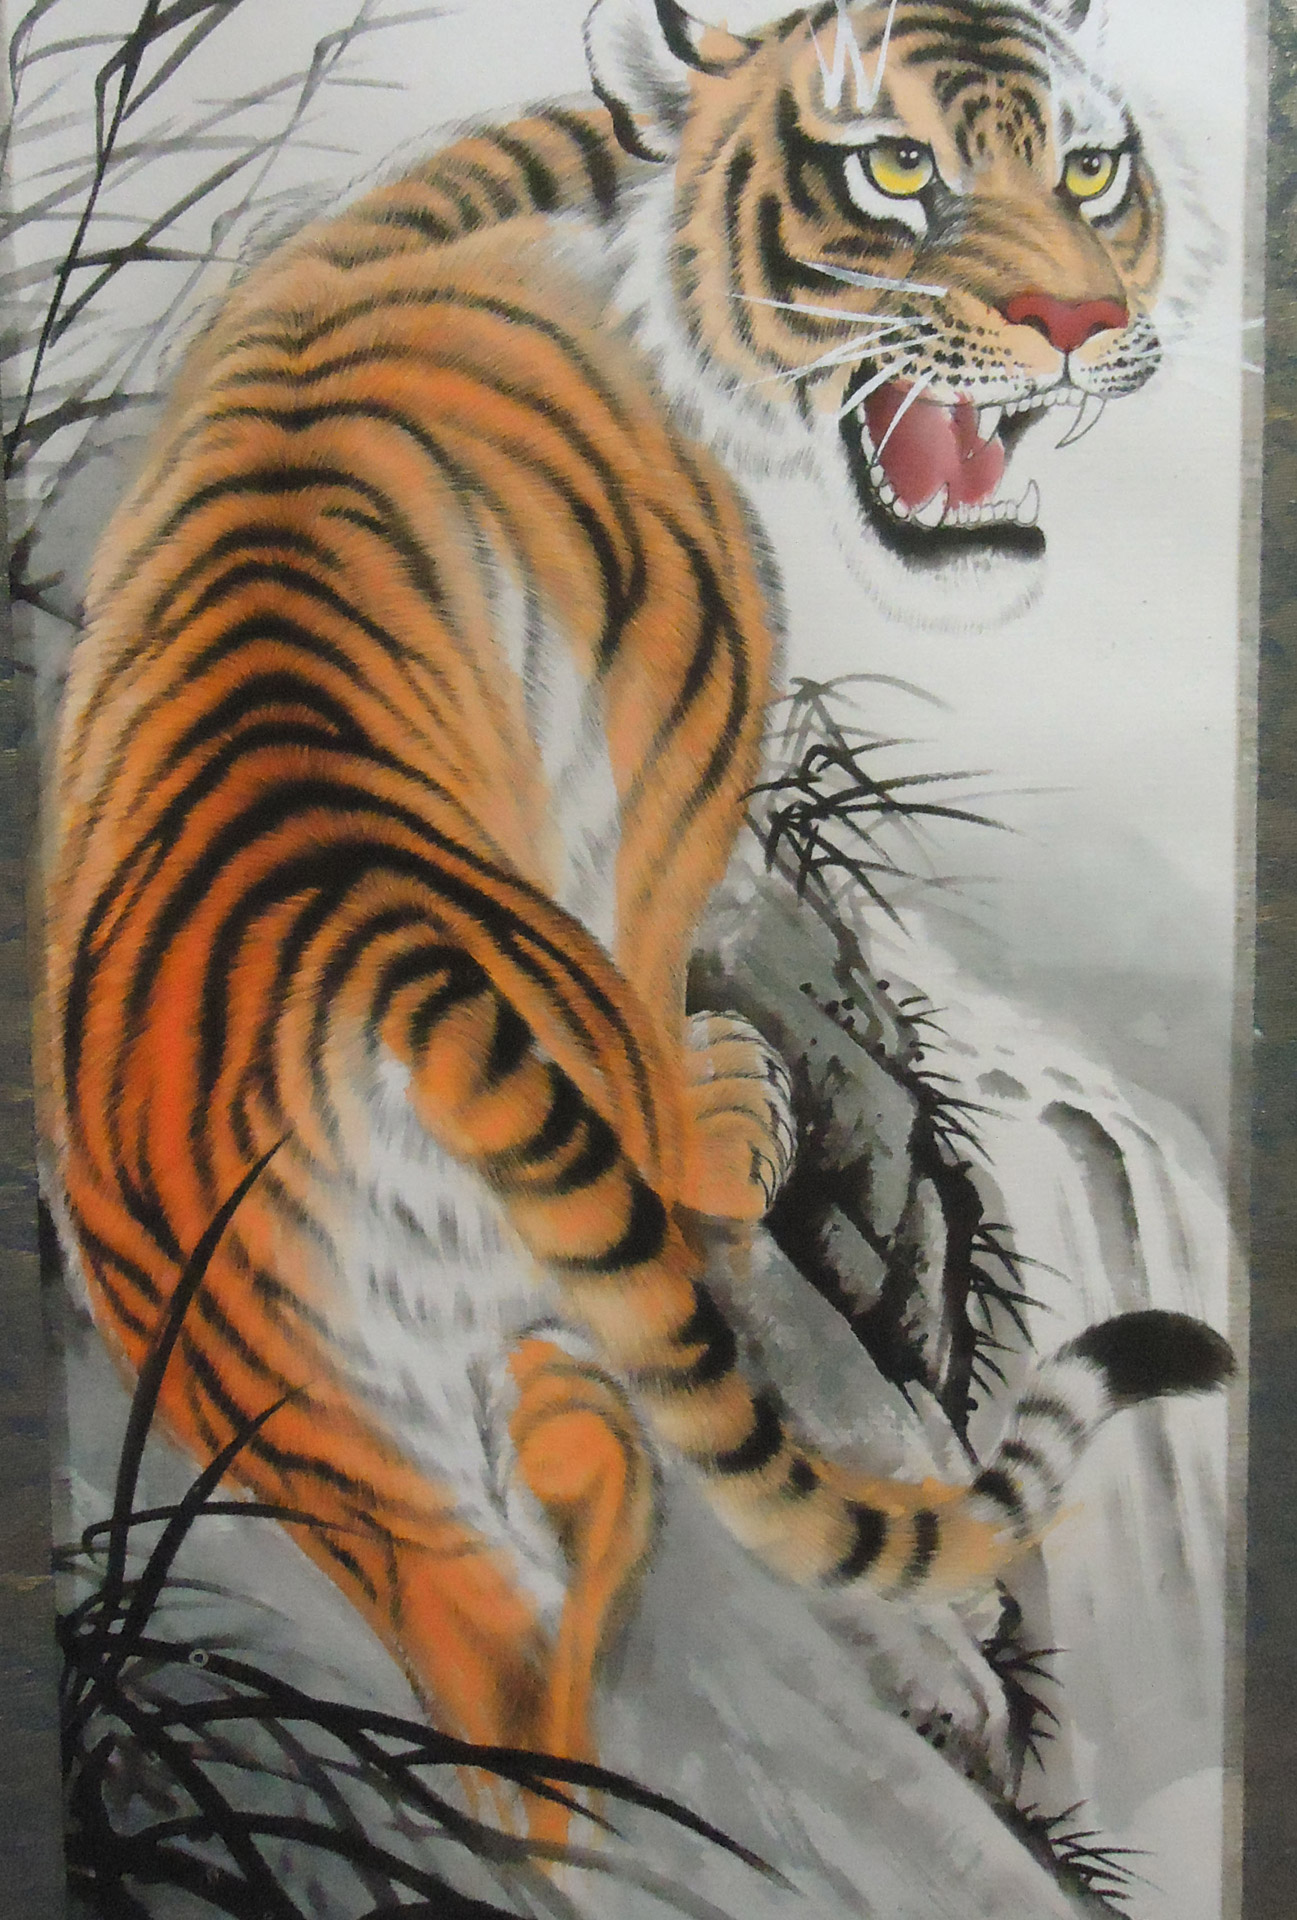 chinese style tiger art free stock photo - public domain pictures